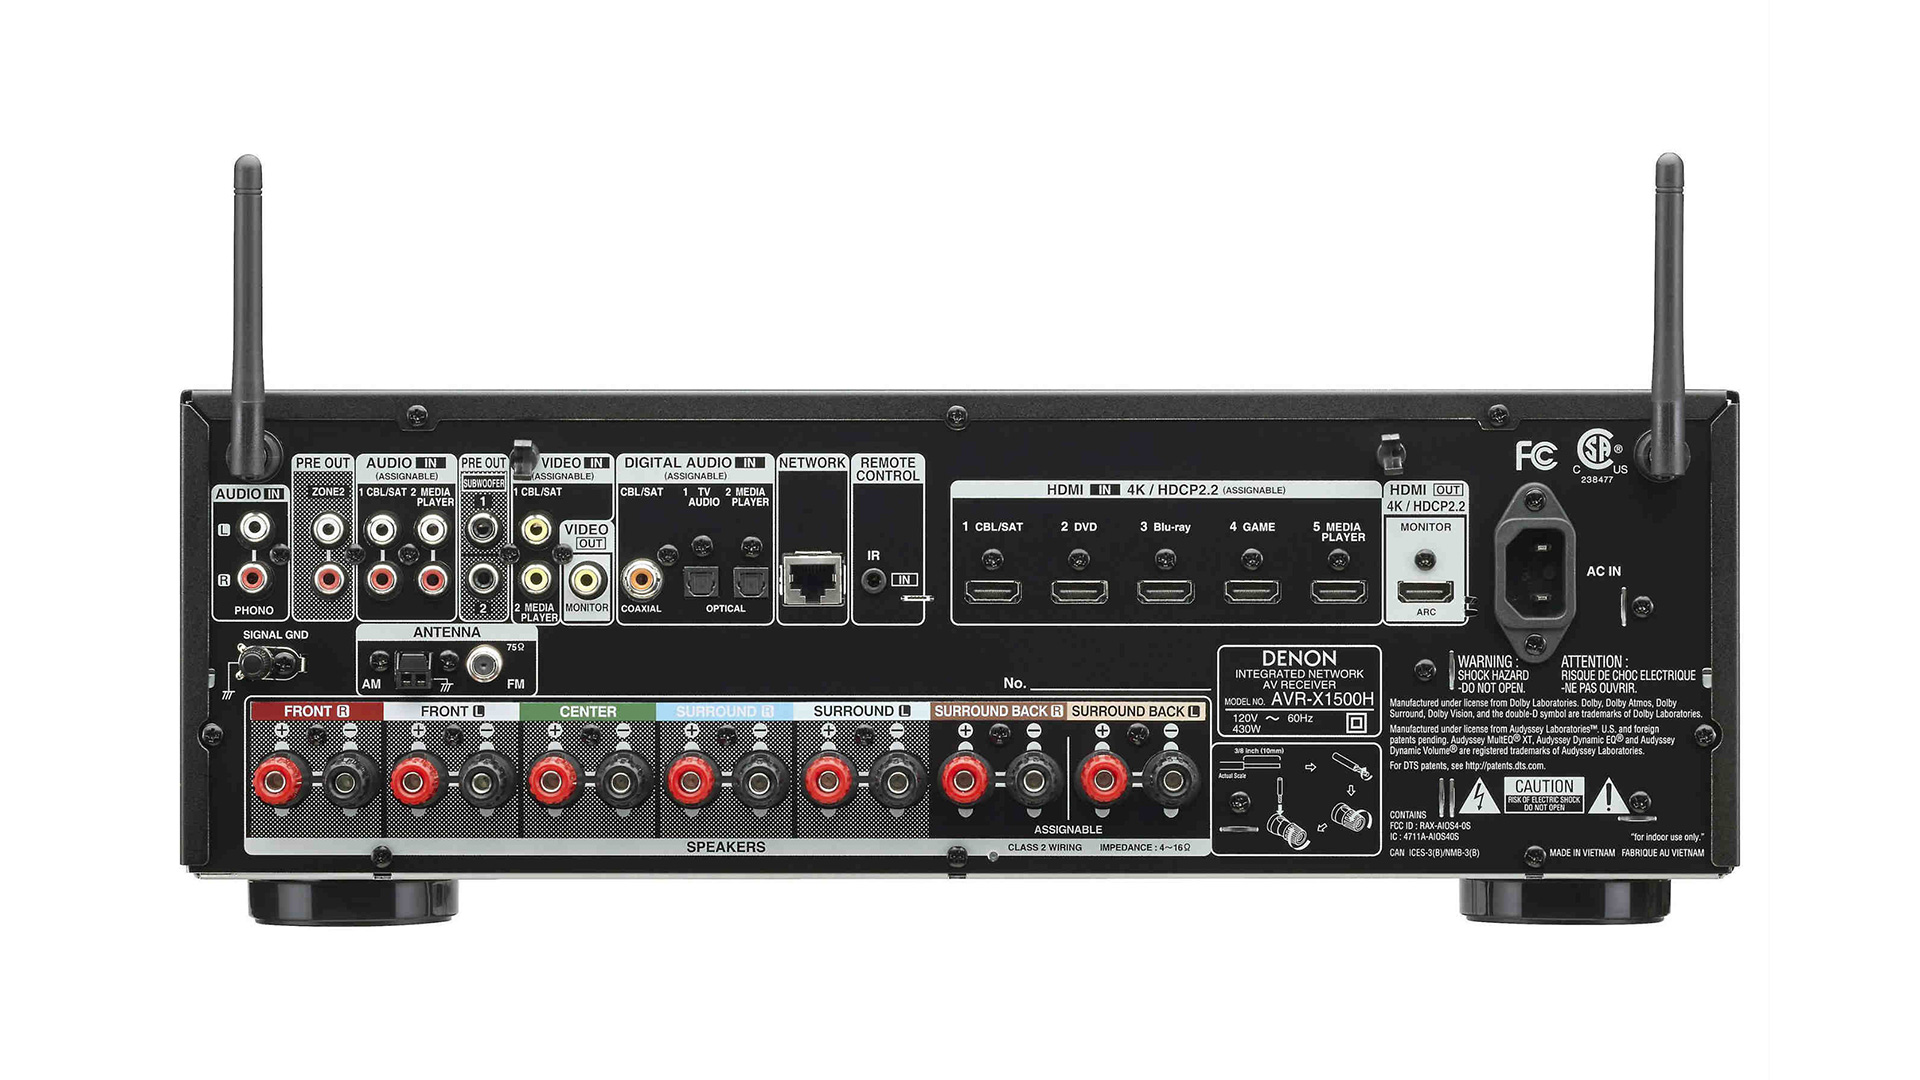 Denon AVR-X1500H AV Surround Receiver (Back) at Creative Audio in Winnipeg